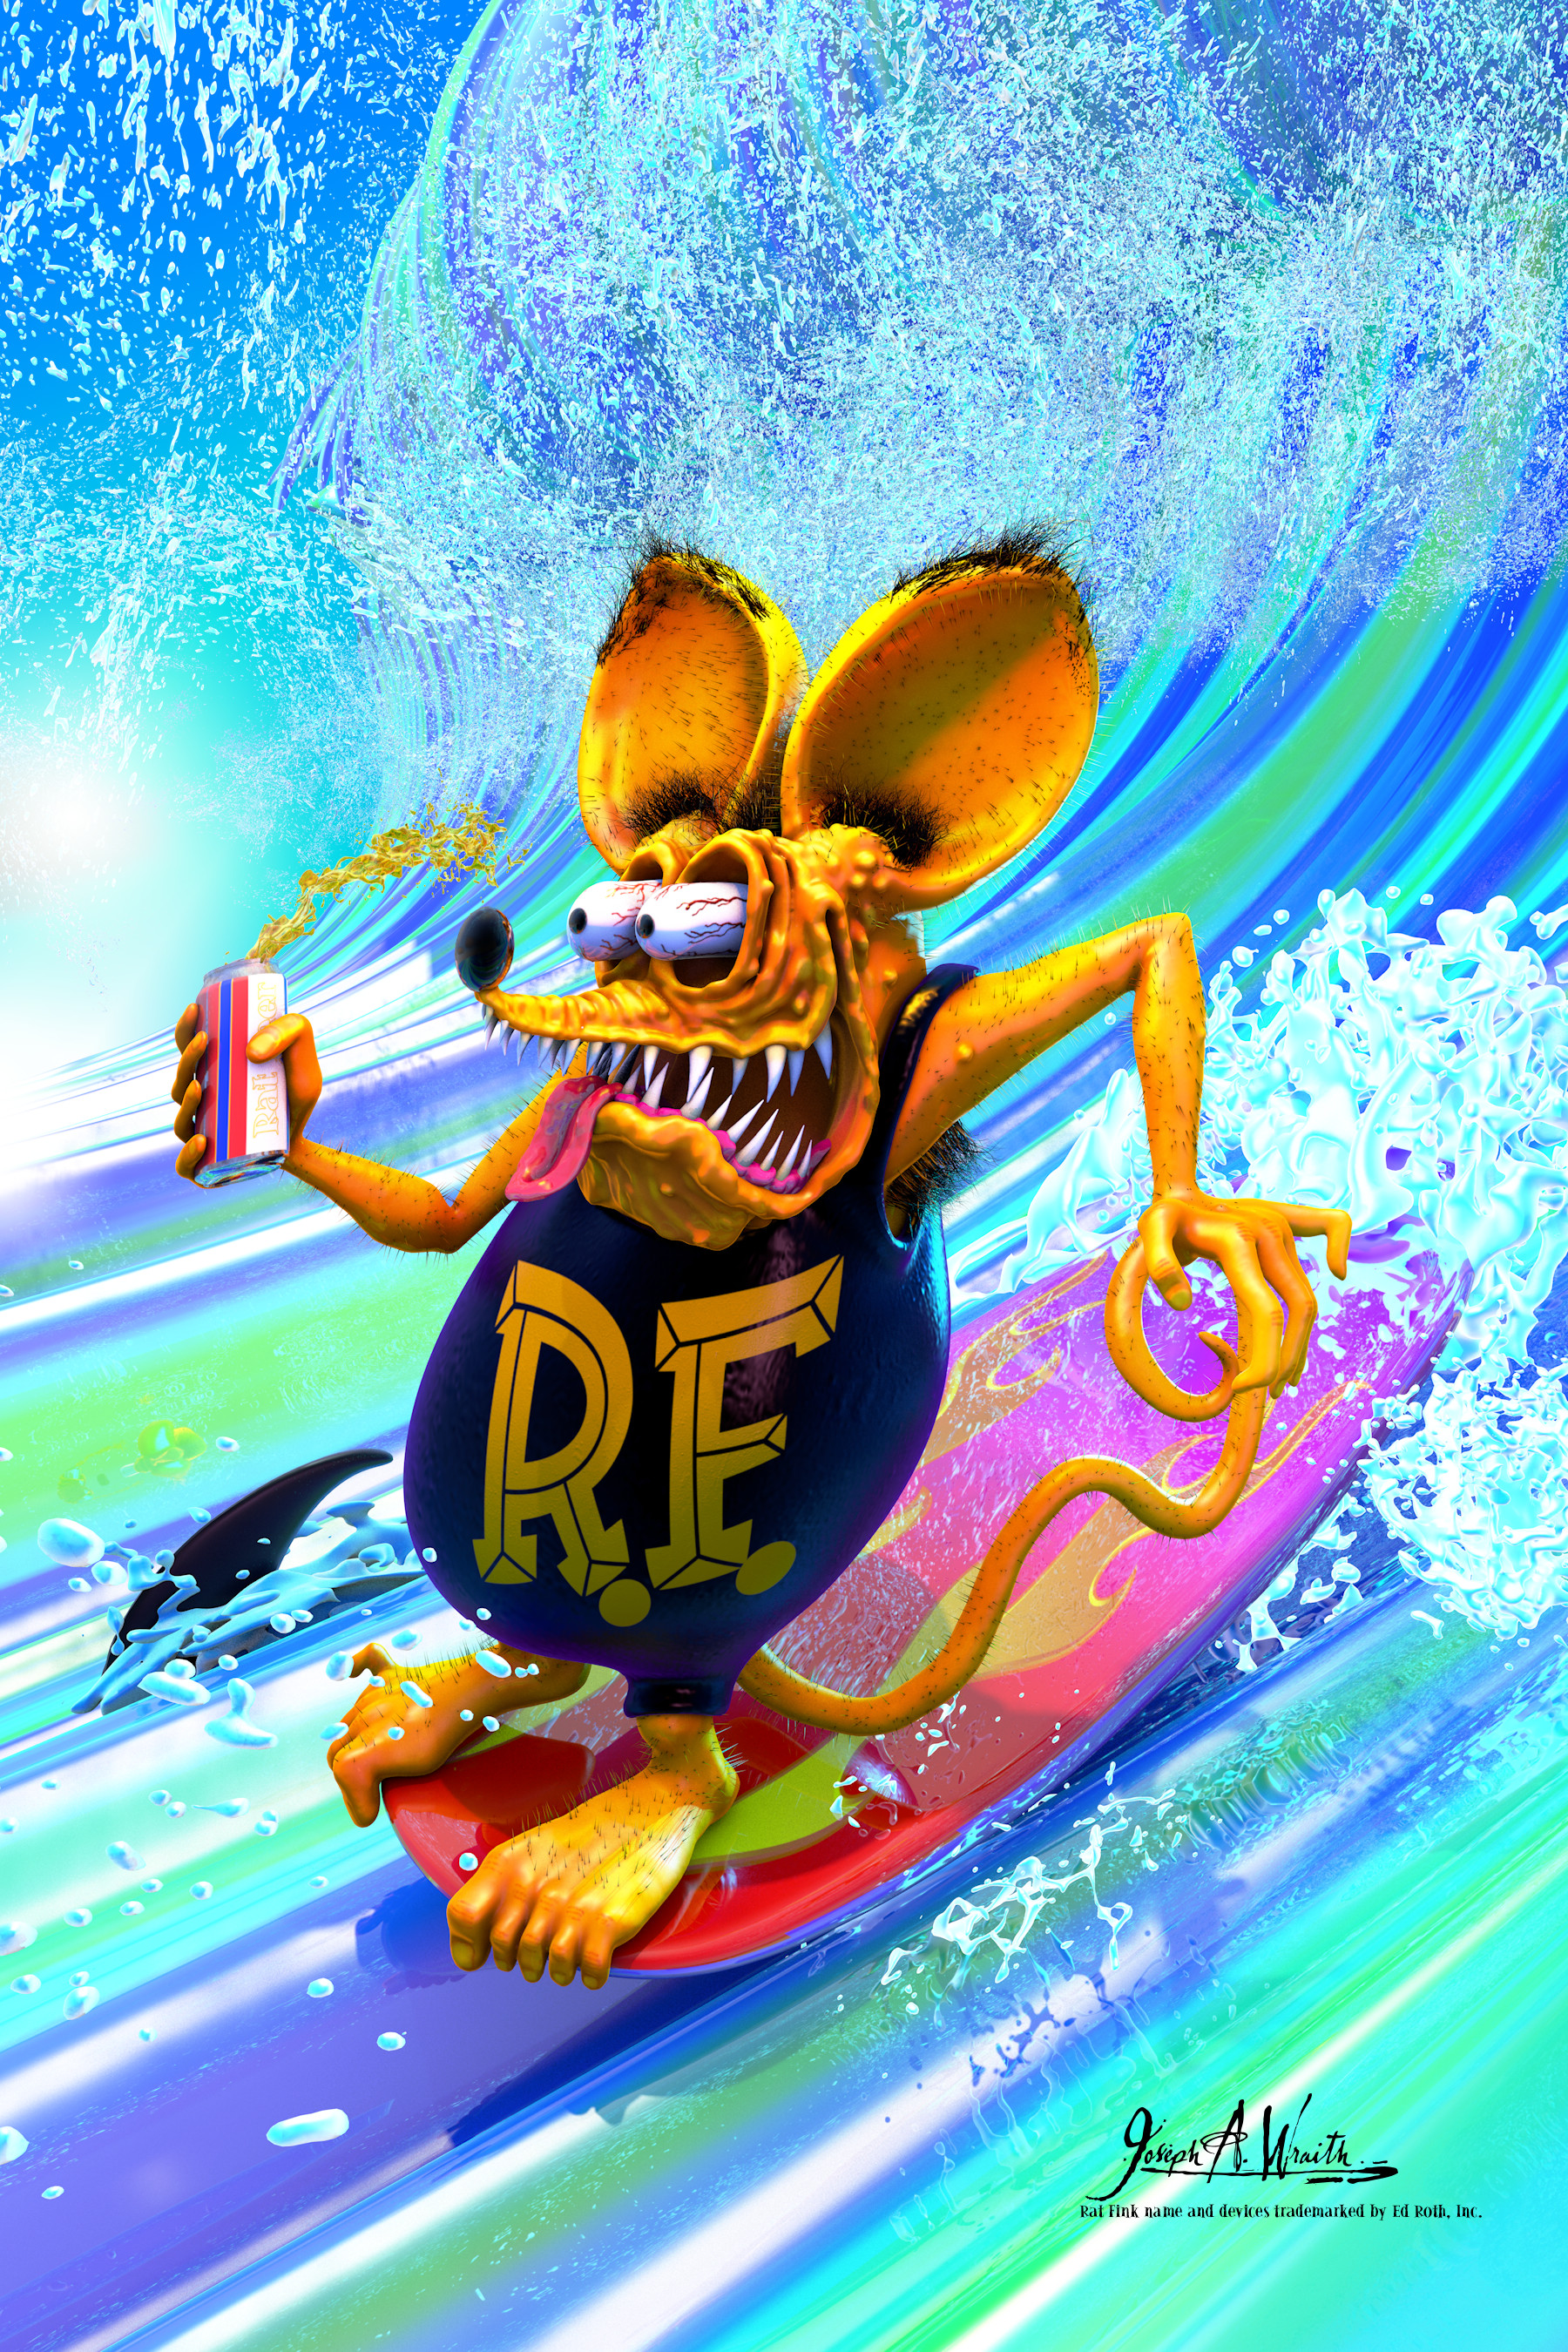 Rat Fink Surfs! ©2018 Copyright, Joseph A. Wraith Rat Fink name and devices trademarked by Ed Roth, Inc.